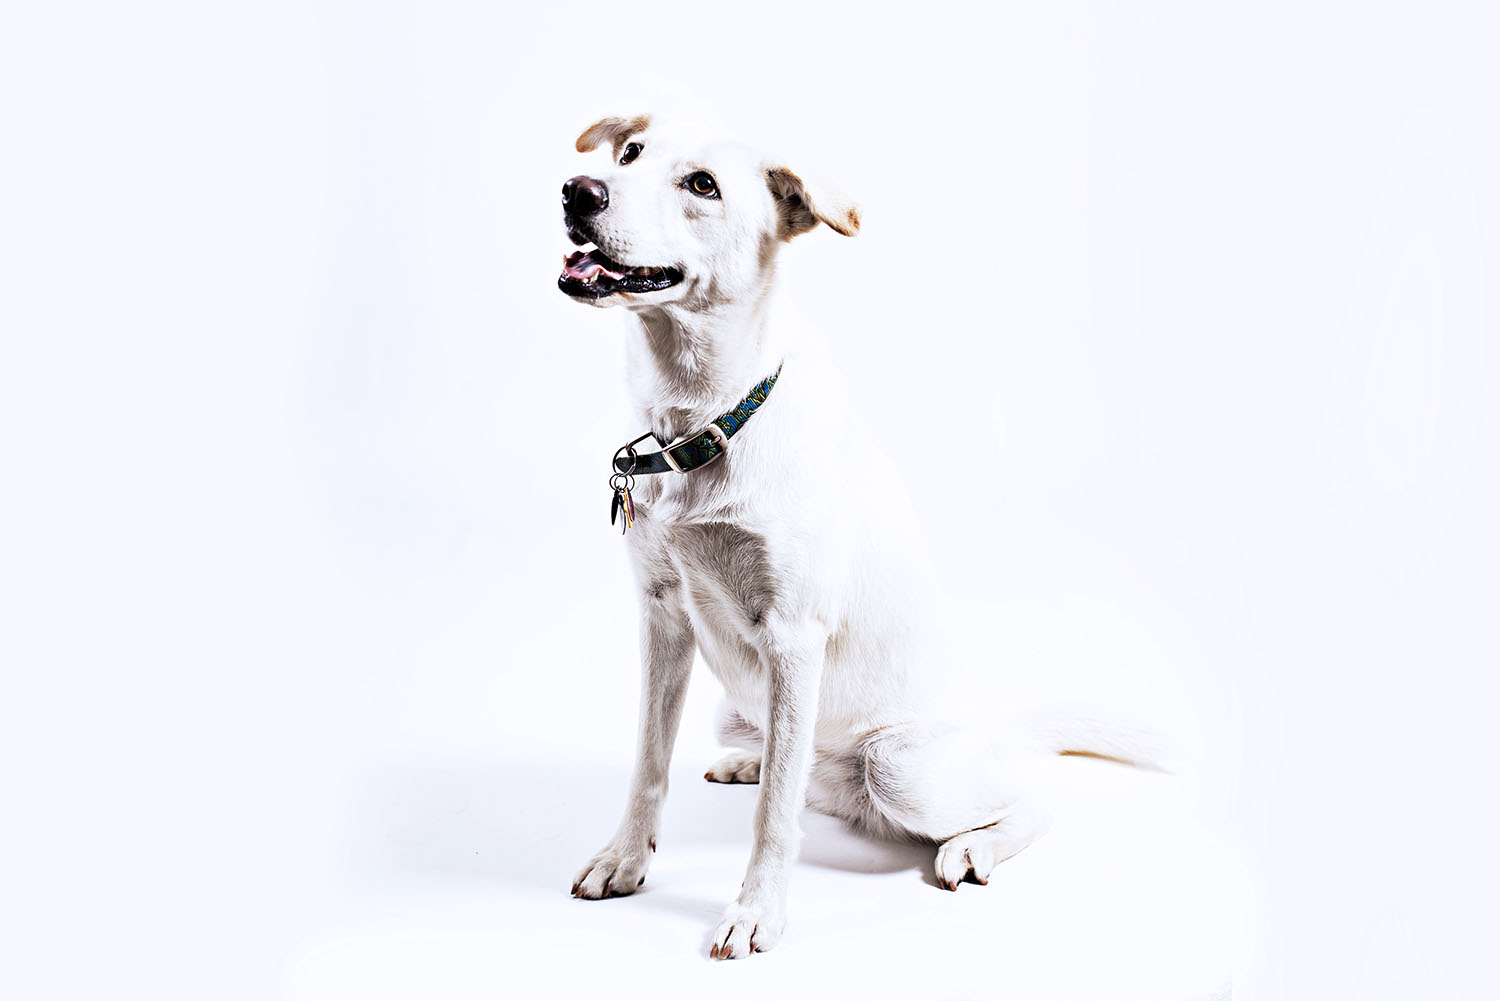 Slade Kemmet Media © Commercial Photography, Grand Avenue Vet Center, Saint Paul, Minnesota